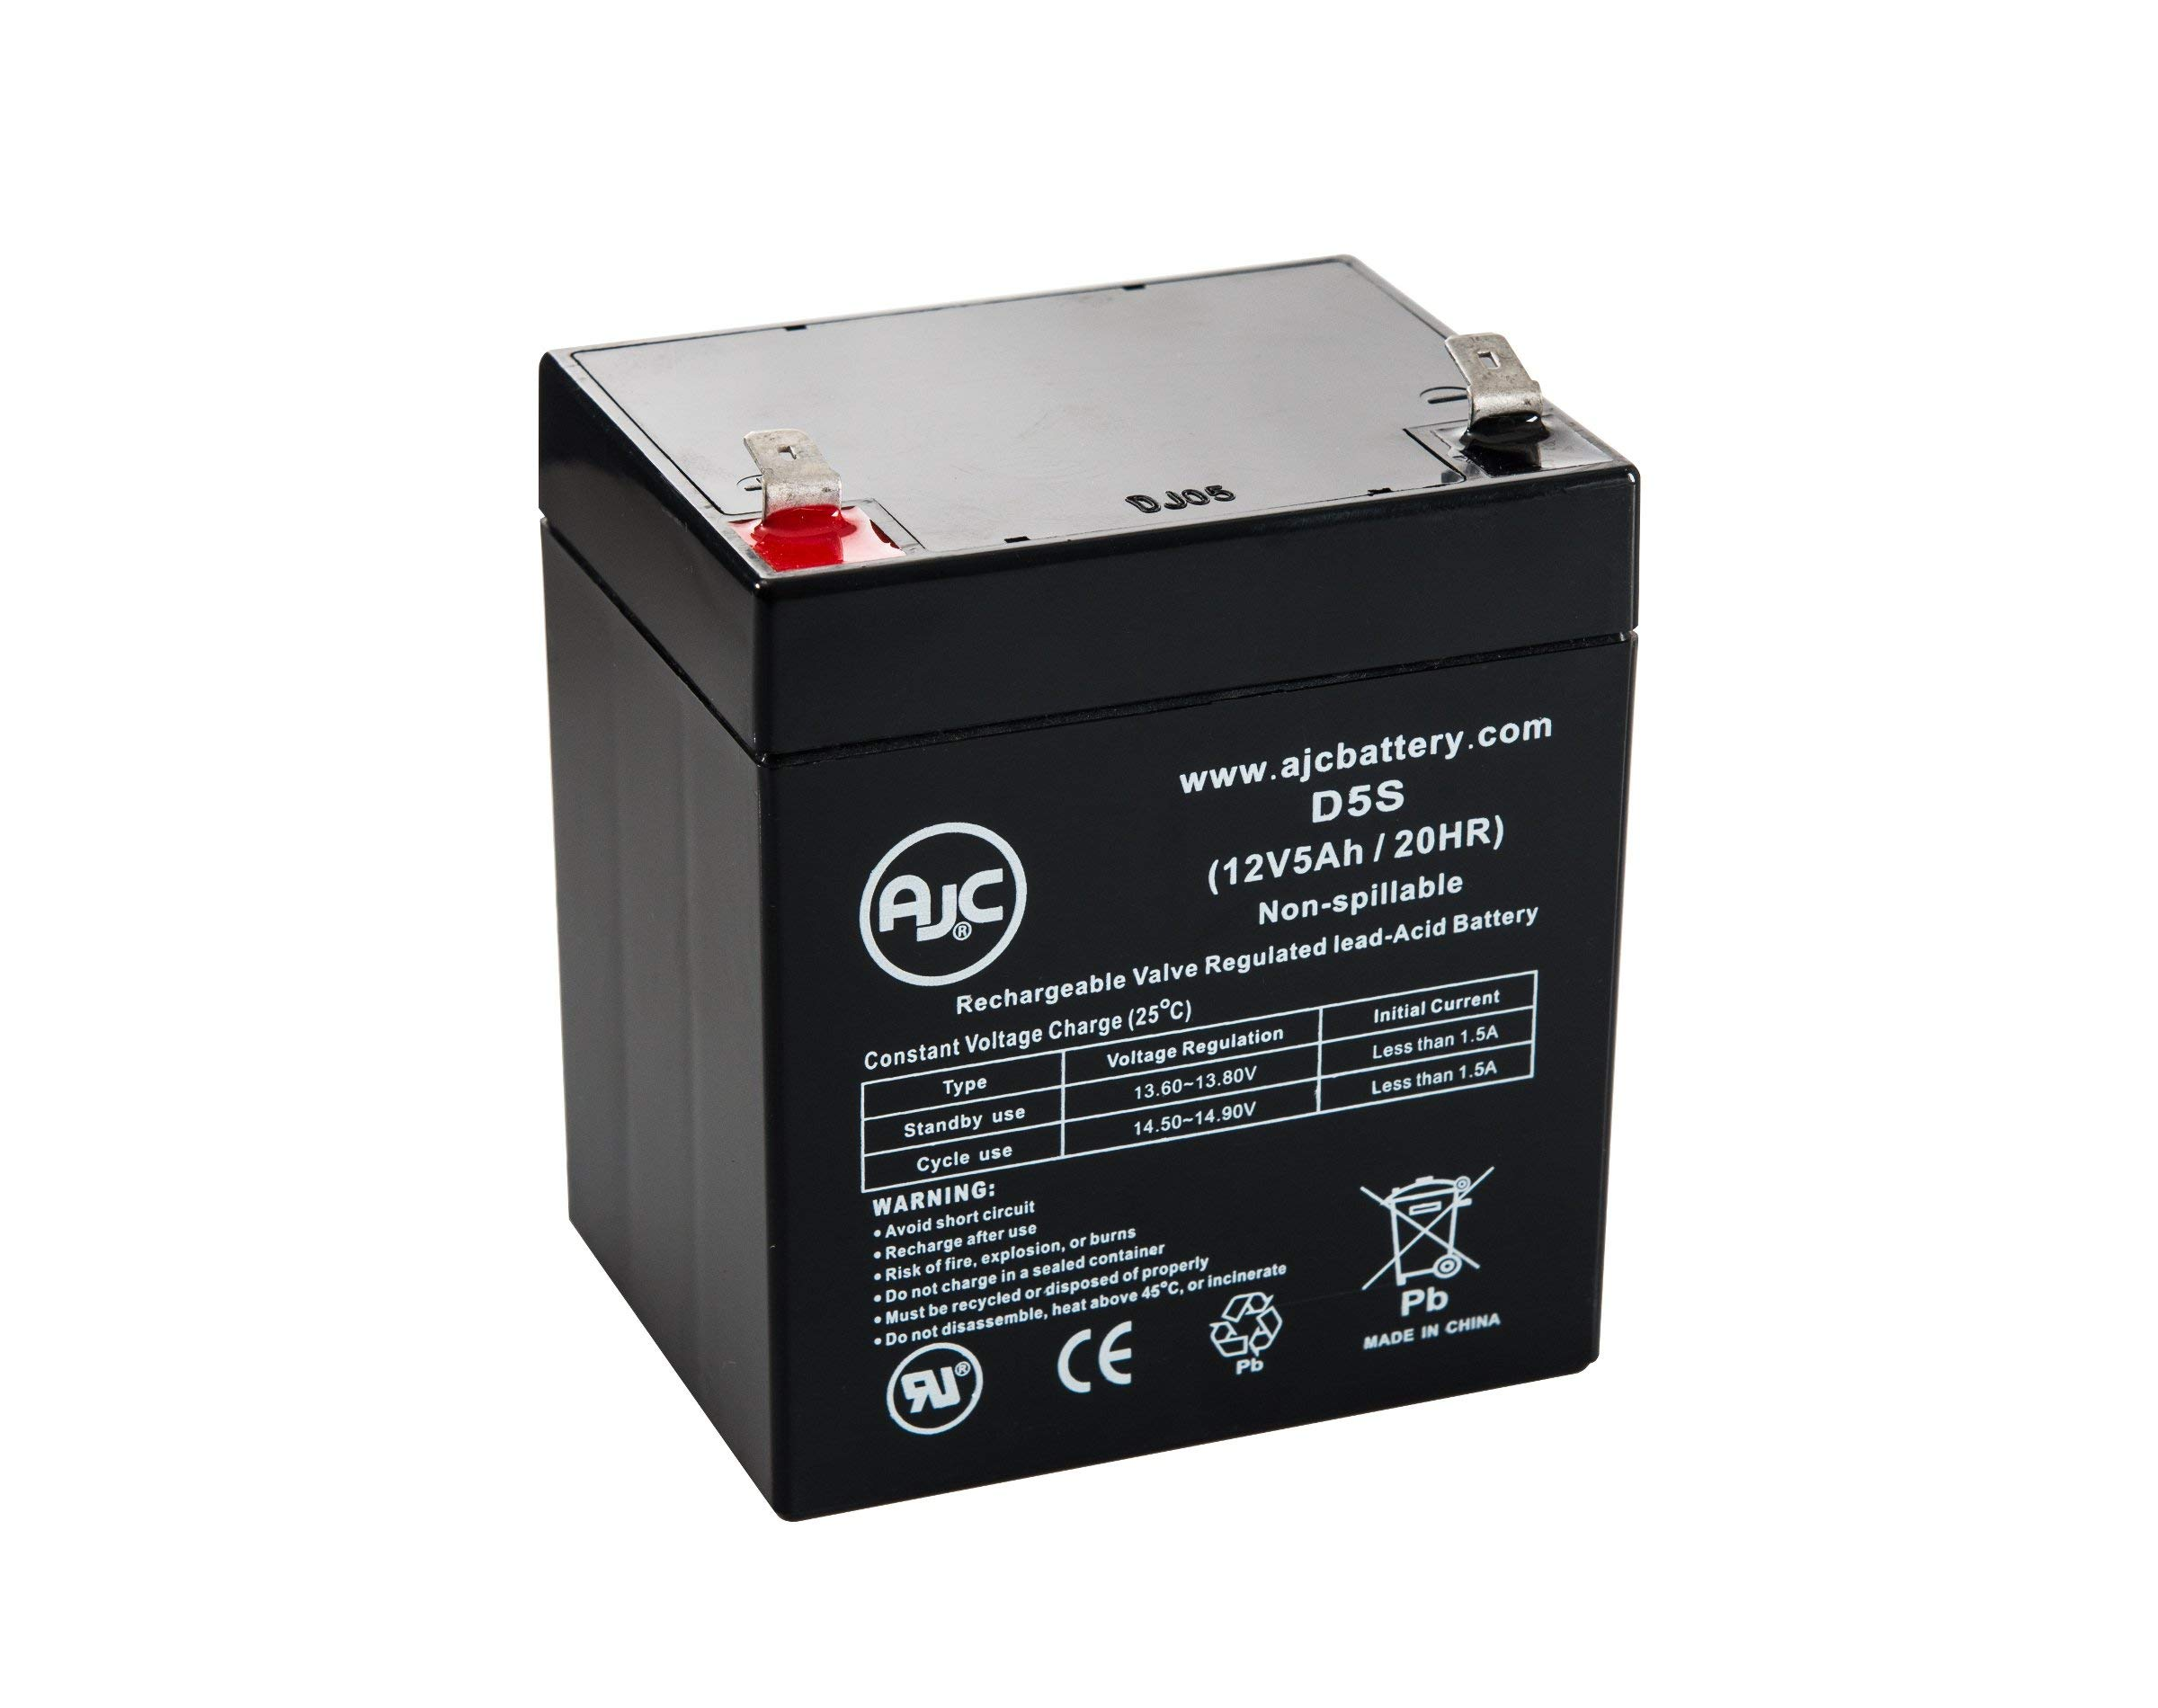 B&B BP5-12 12V 5Ah UPS Battery - This is an AJC Brand Replacement